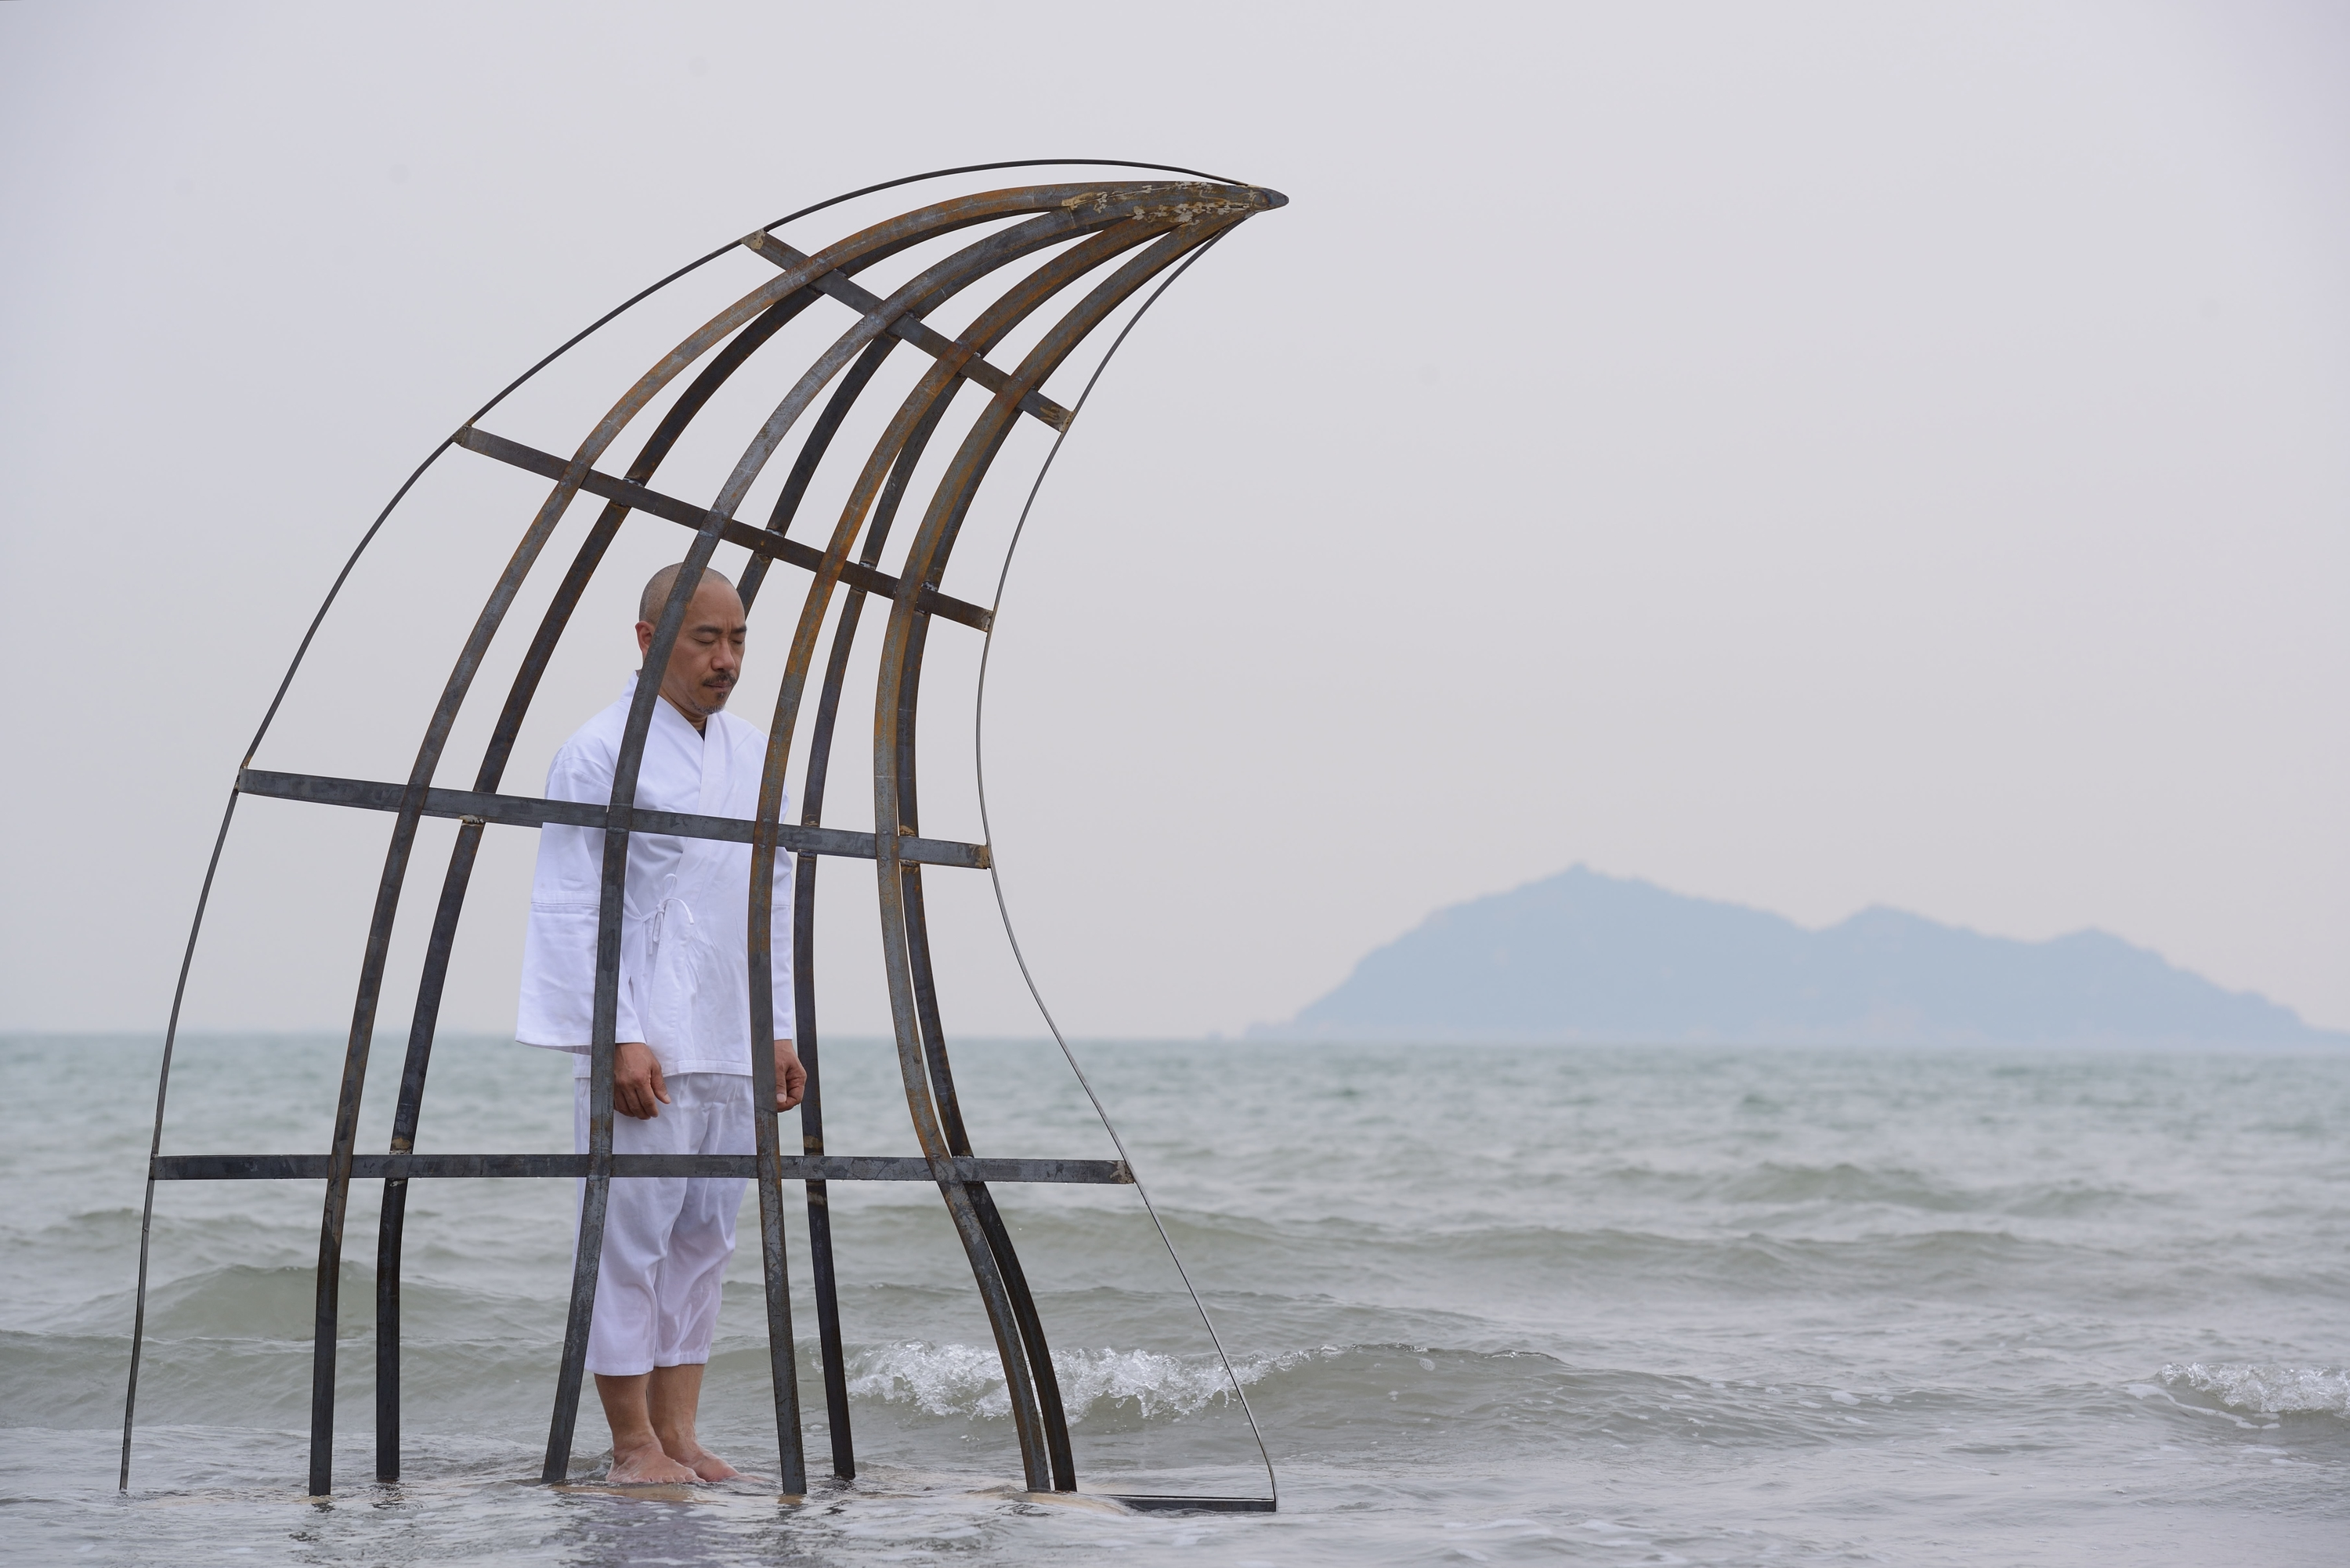 Interview: Ho Siu Kee and Alex Hofford on shark preservation and activist art